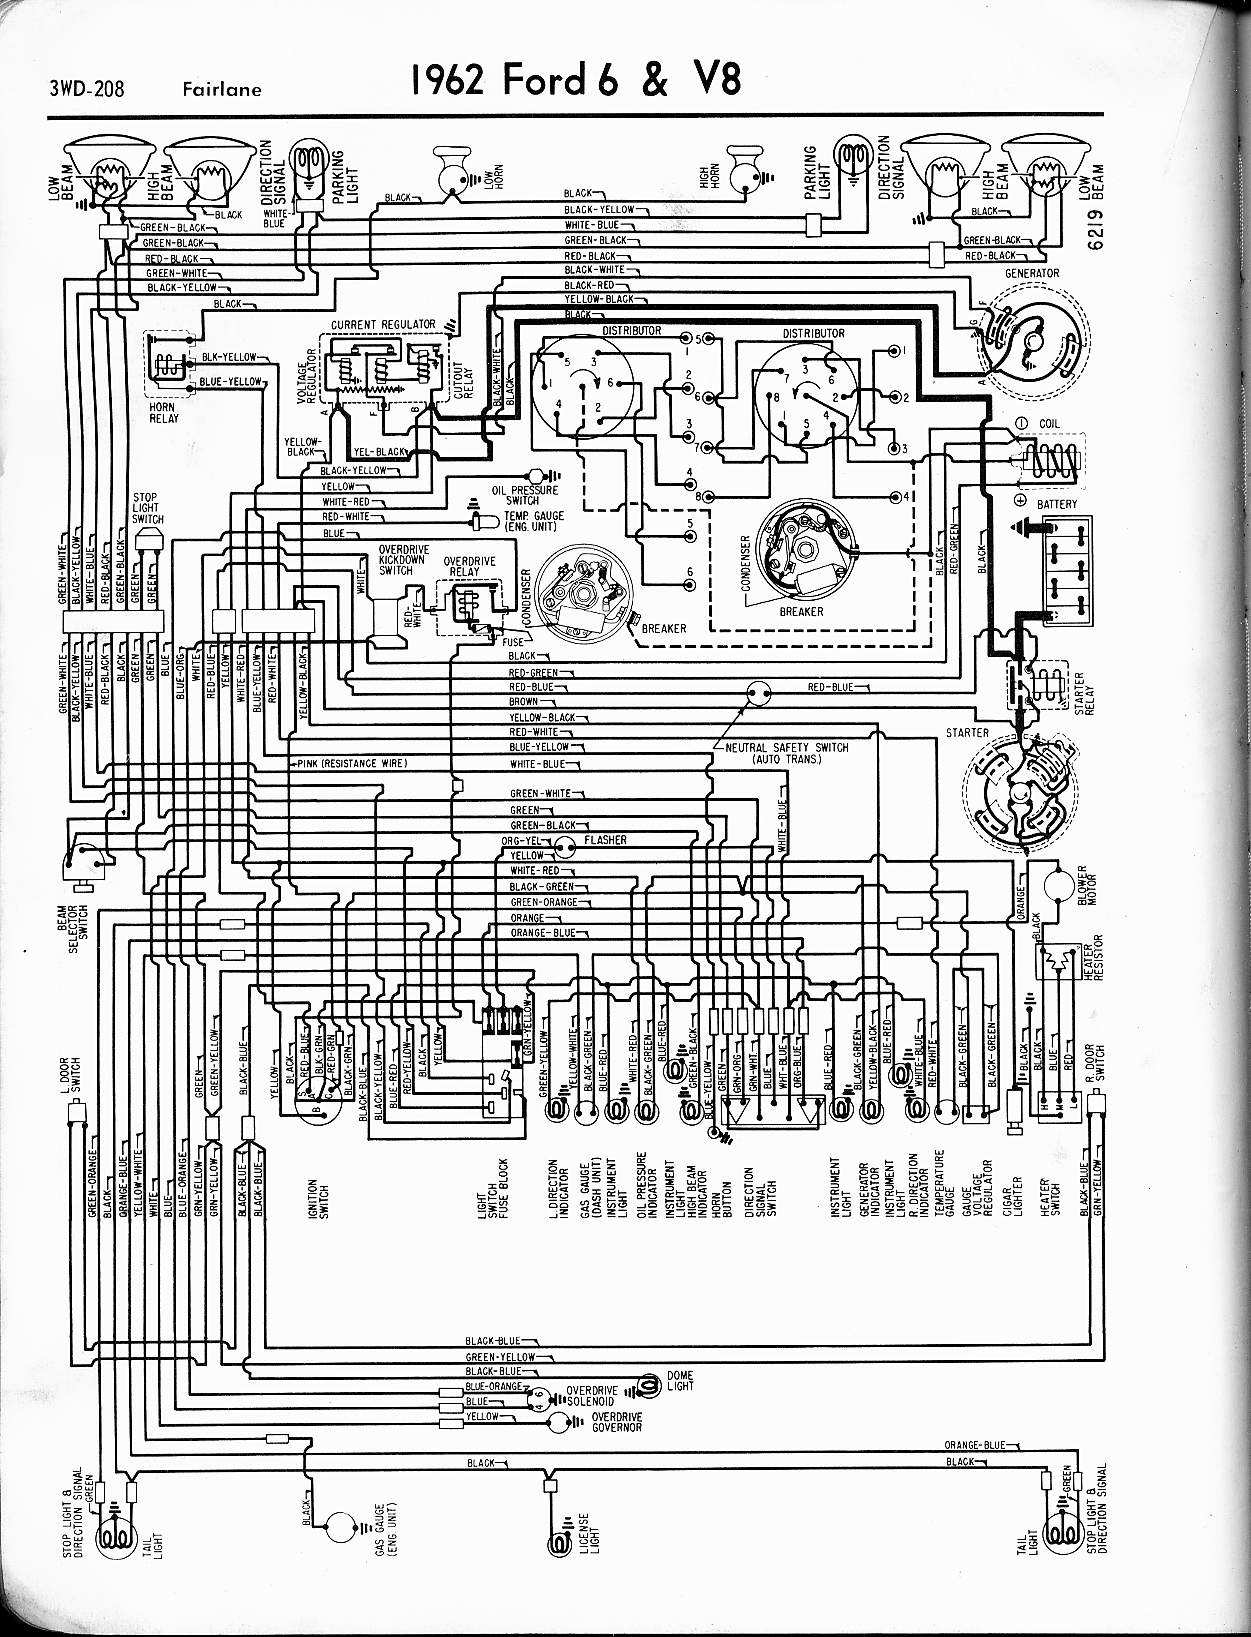 1962 Ford Thunderbird Wiring Diagram Opinions About 1986 57 65 Diagrams Rh Oldcarmanualproject Com Engine Ex Host System